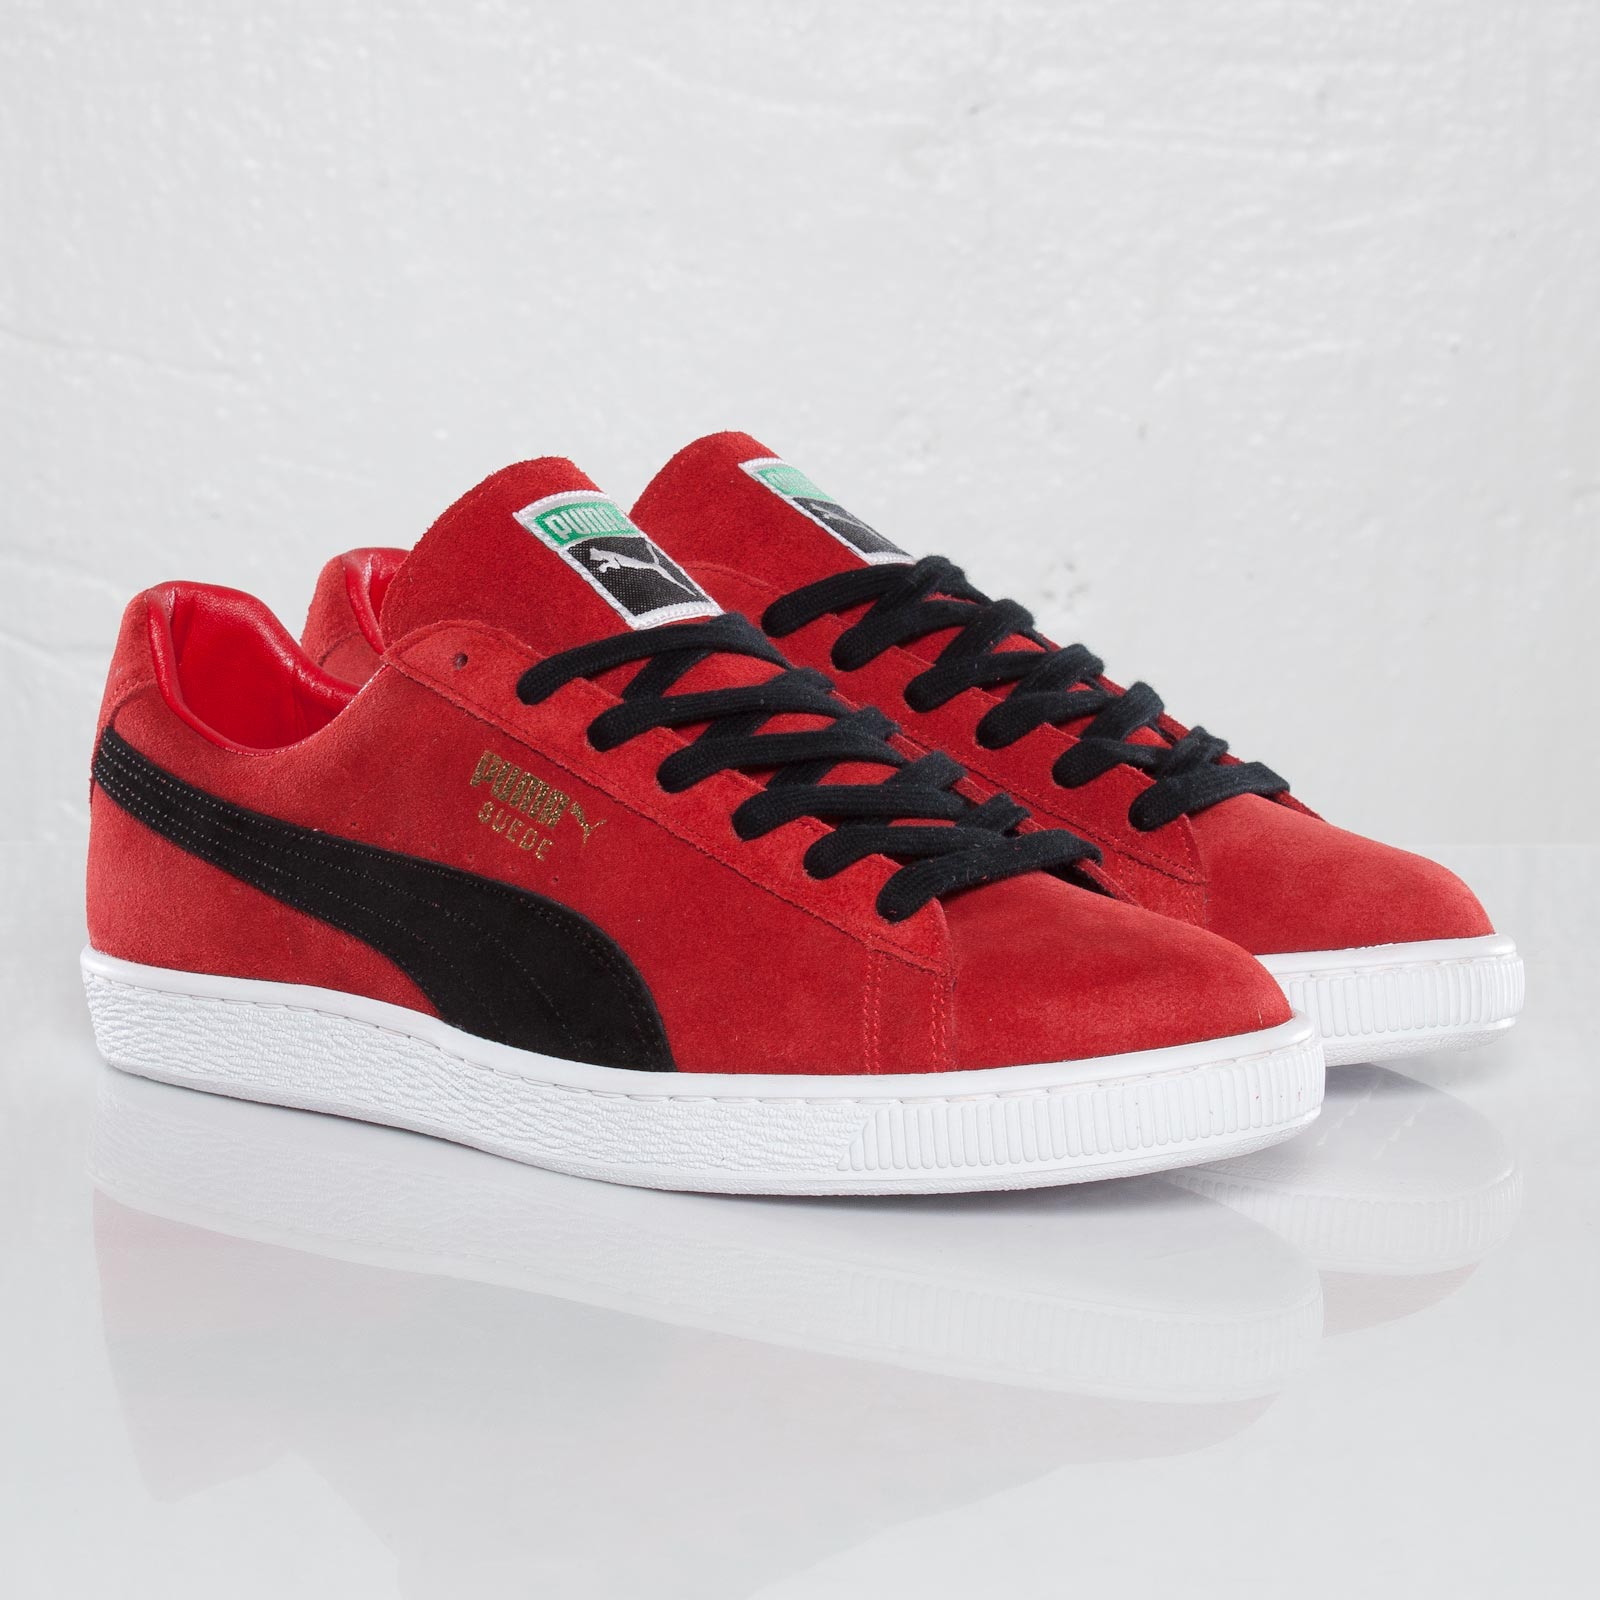 red and black pumas on sale \u003e Factory Store